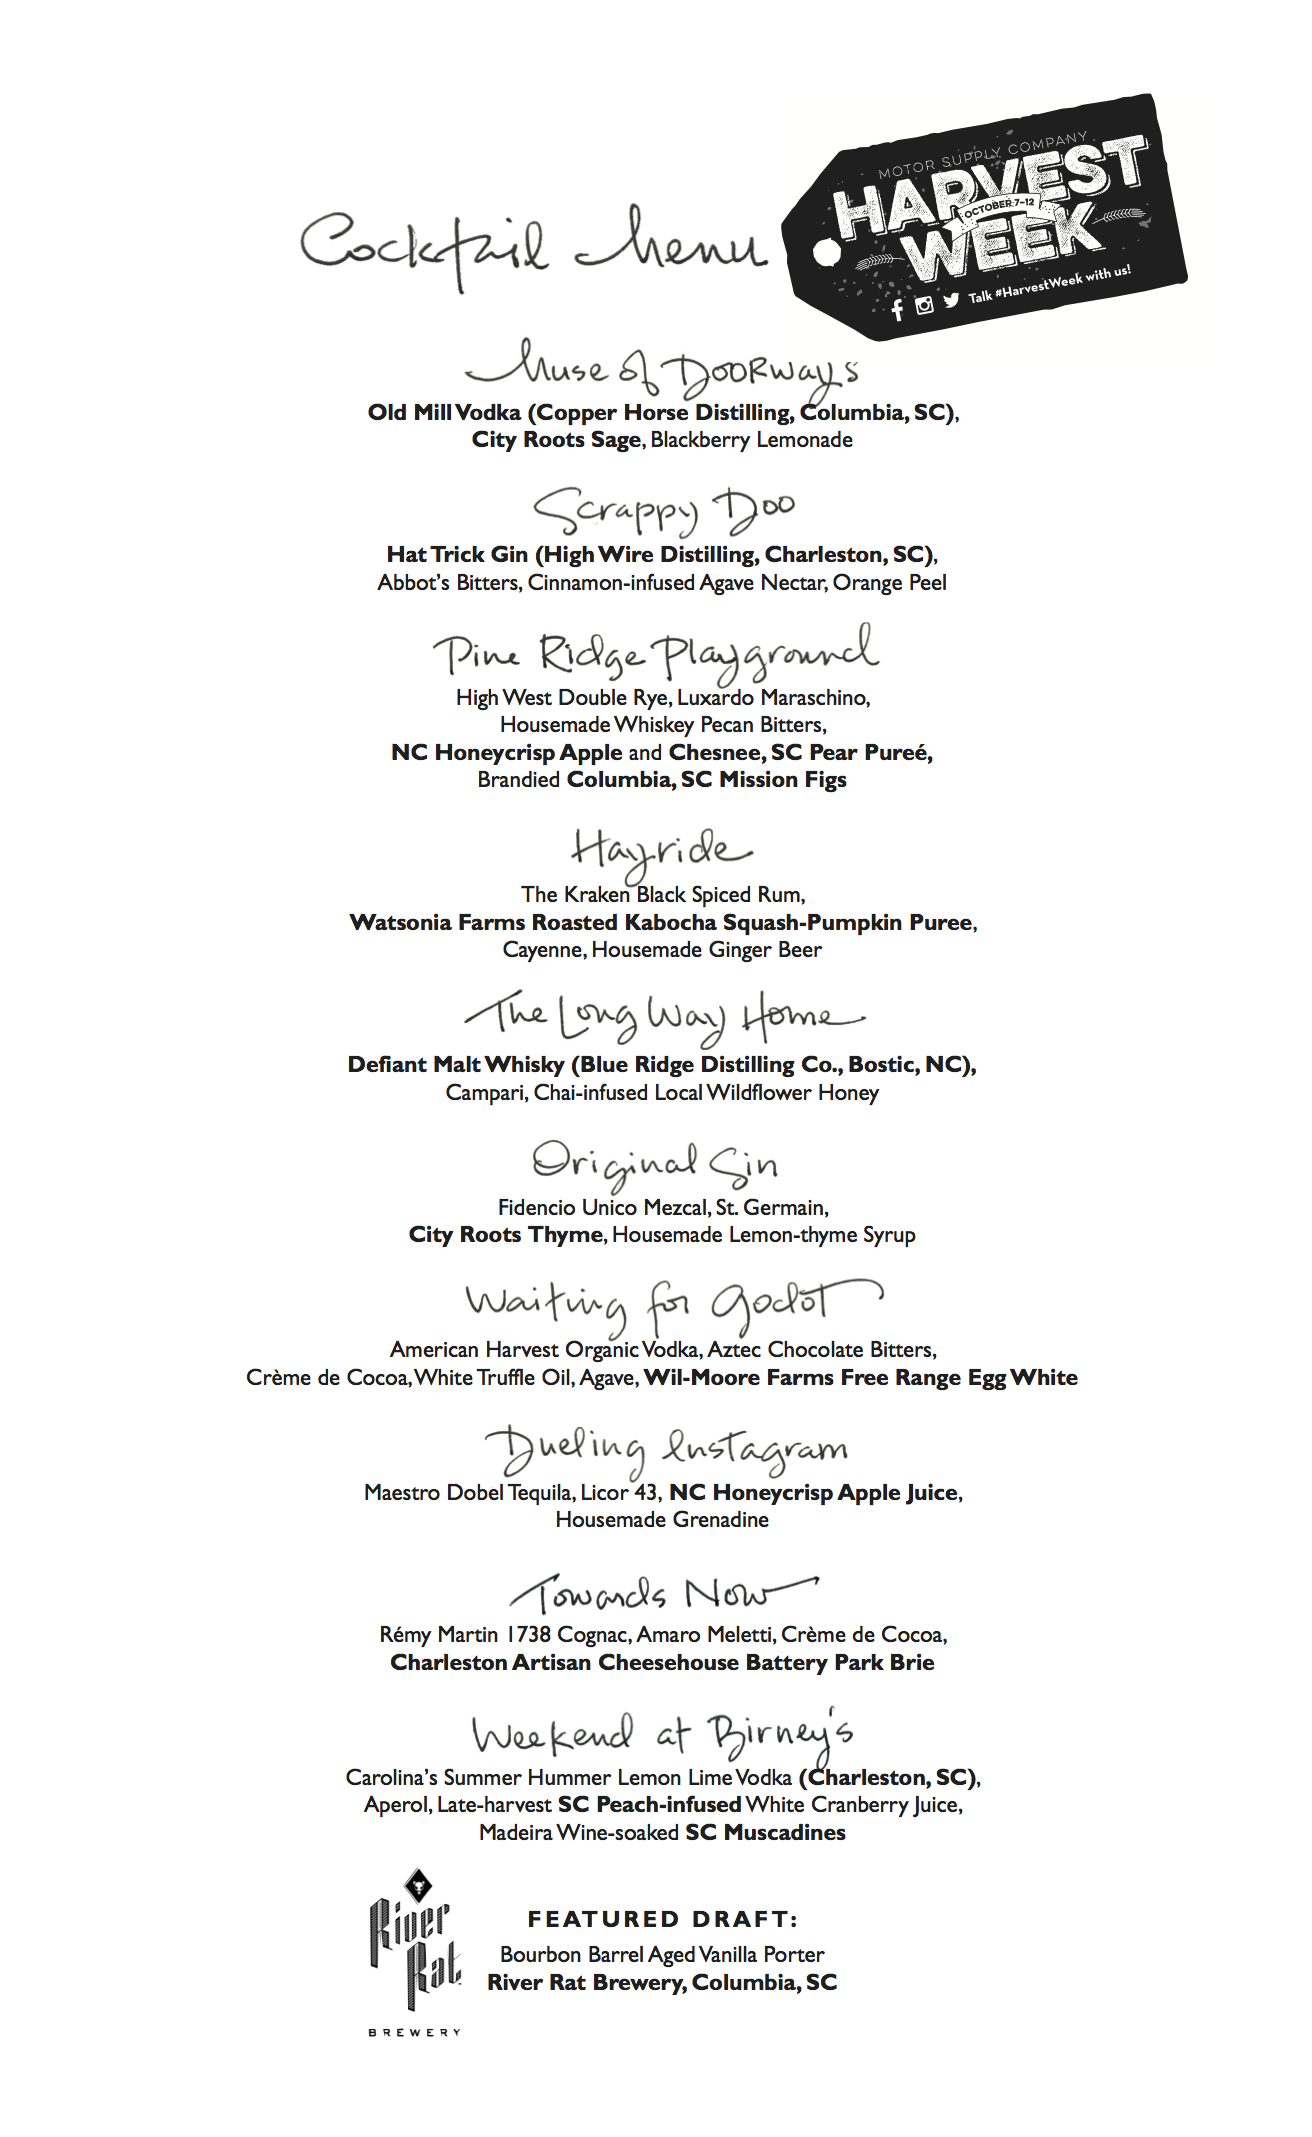 Harvest Week Cocktail Menu: Fall 2014 at Motor Supply Co. Bistro